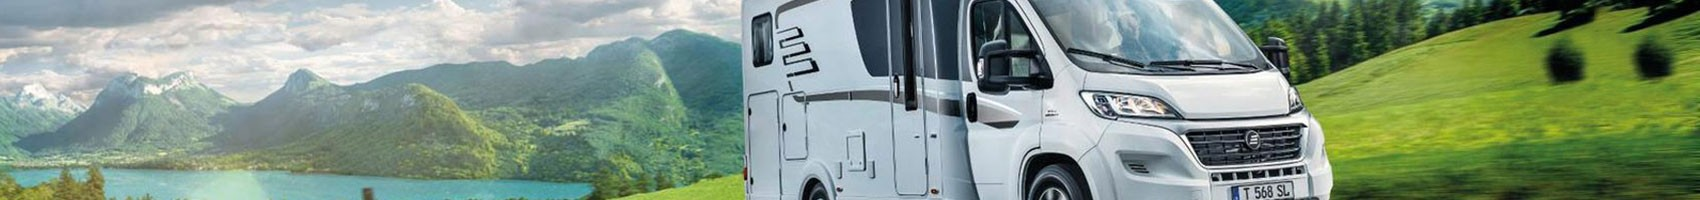 Dethleffs Motorhomes Through the Generations